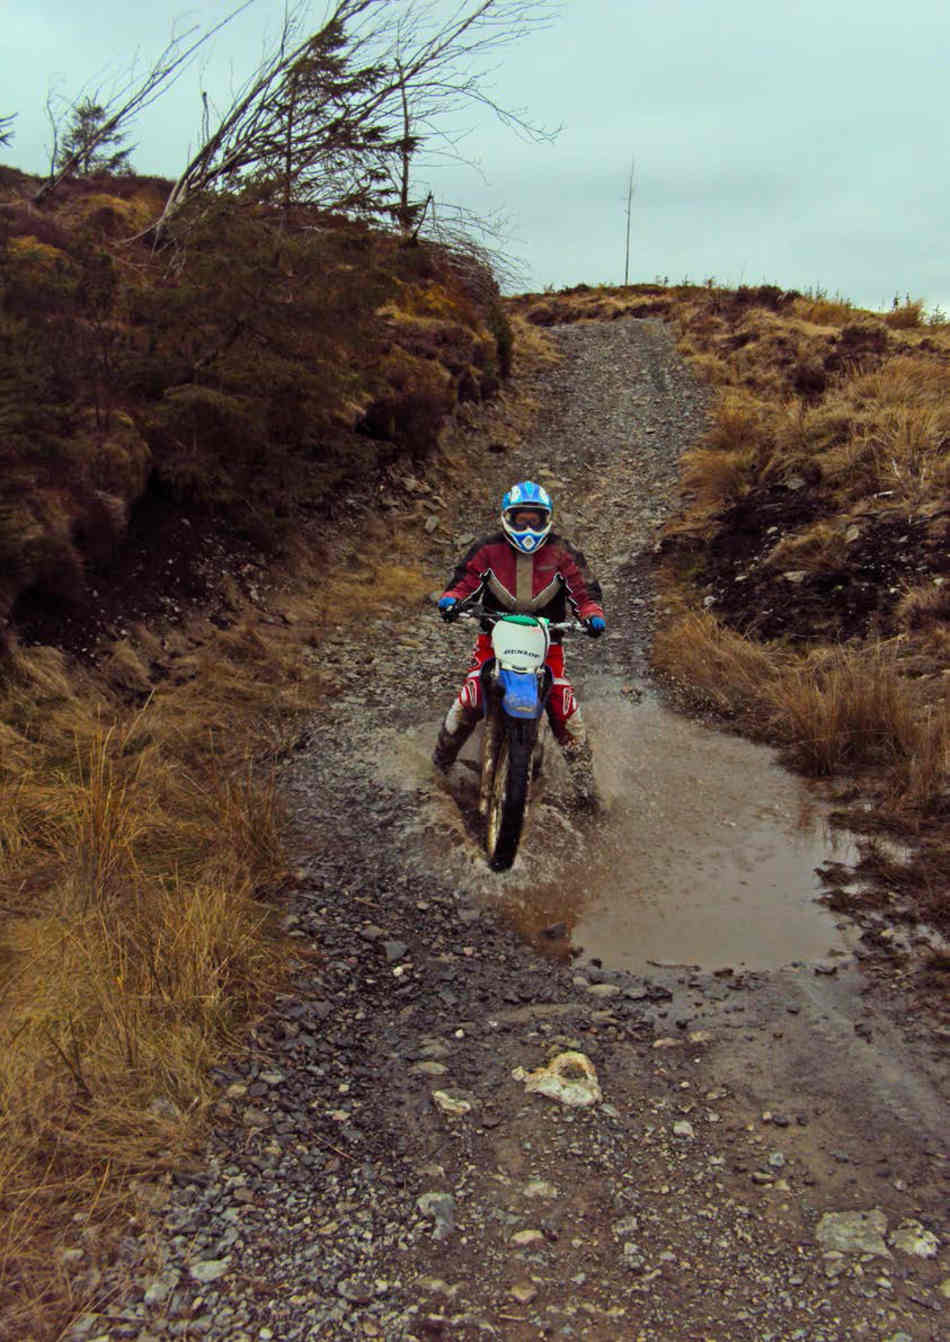 Jan on the TT-R 230, gently riding through a puddle on a gravel track